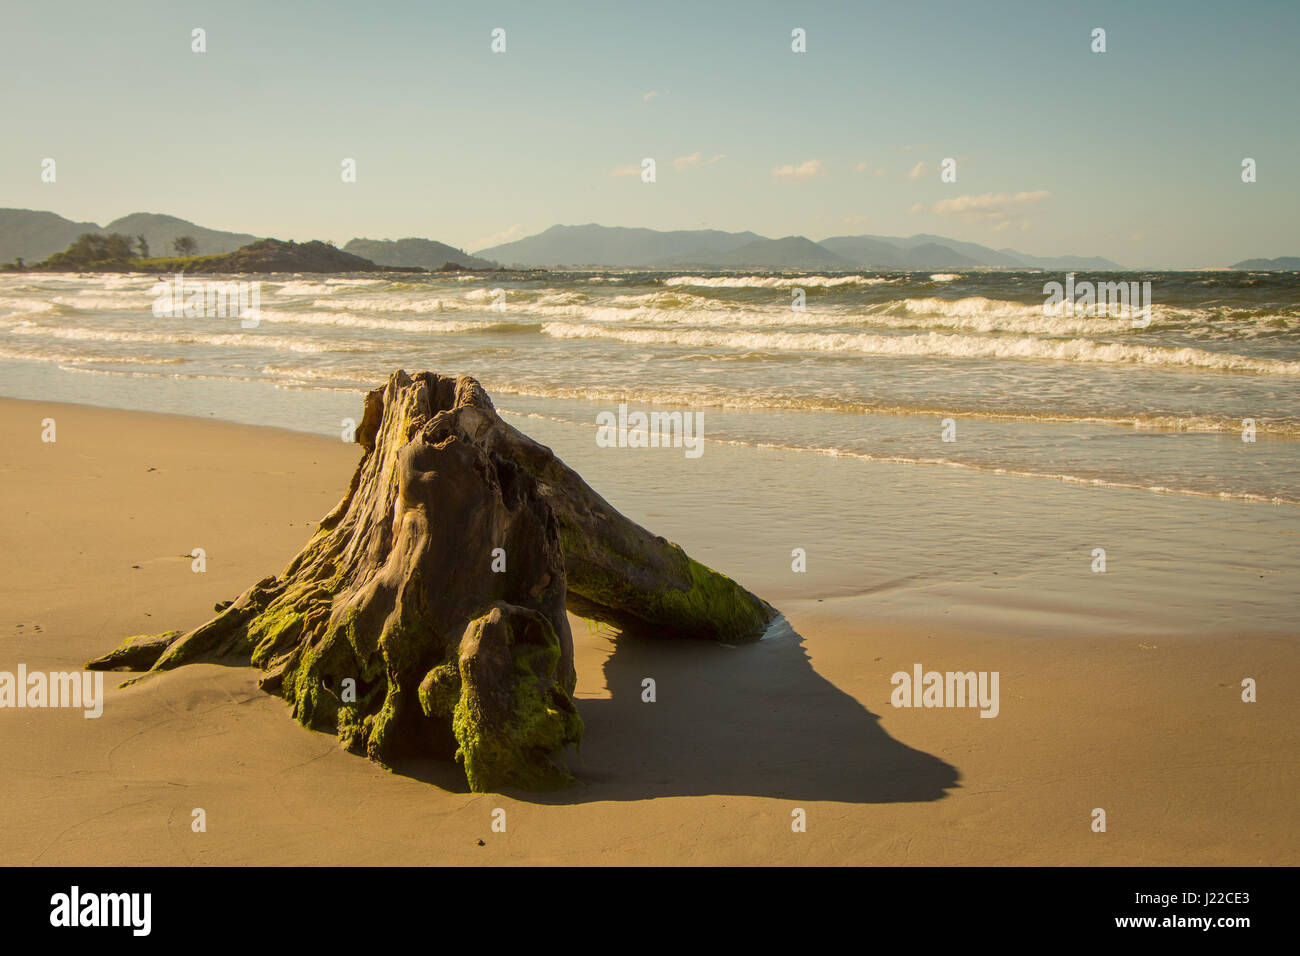 Old trunk brought by the sea rests in the sand of Matadeiro beach, in Florianopolis, Brazil. - Stock Image